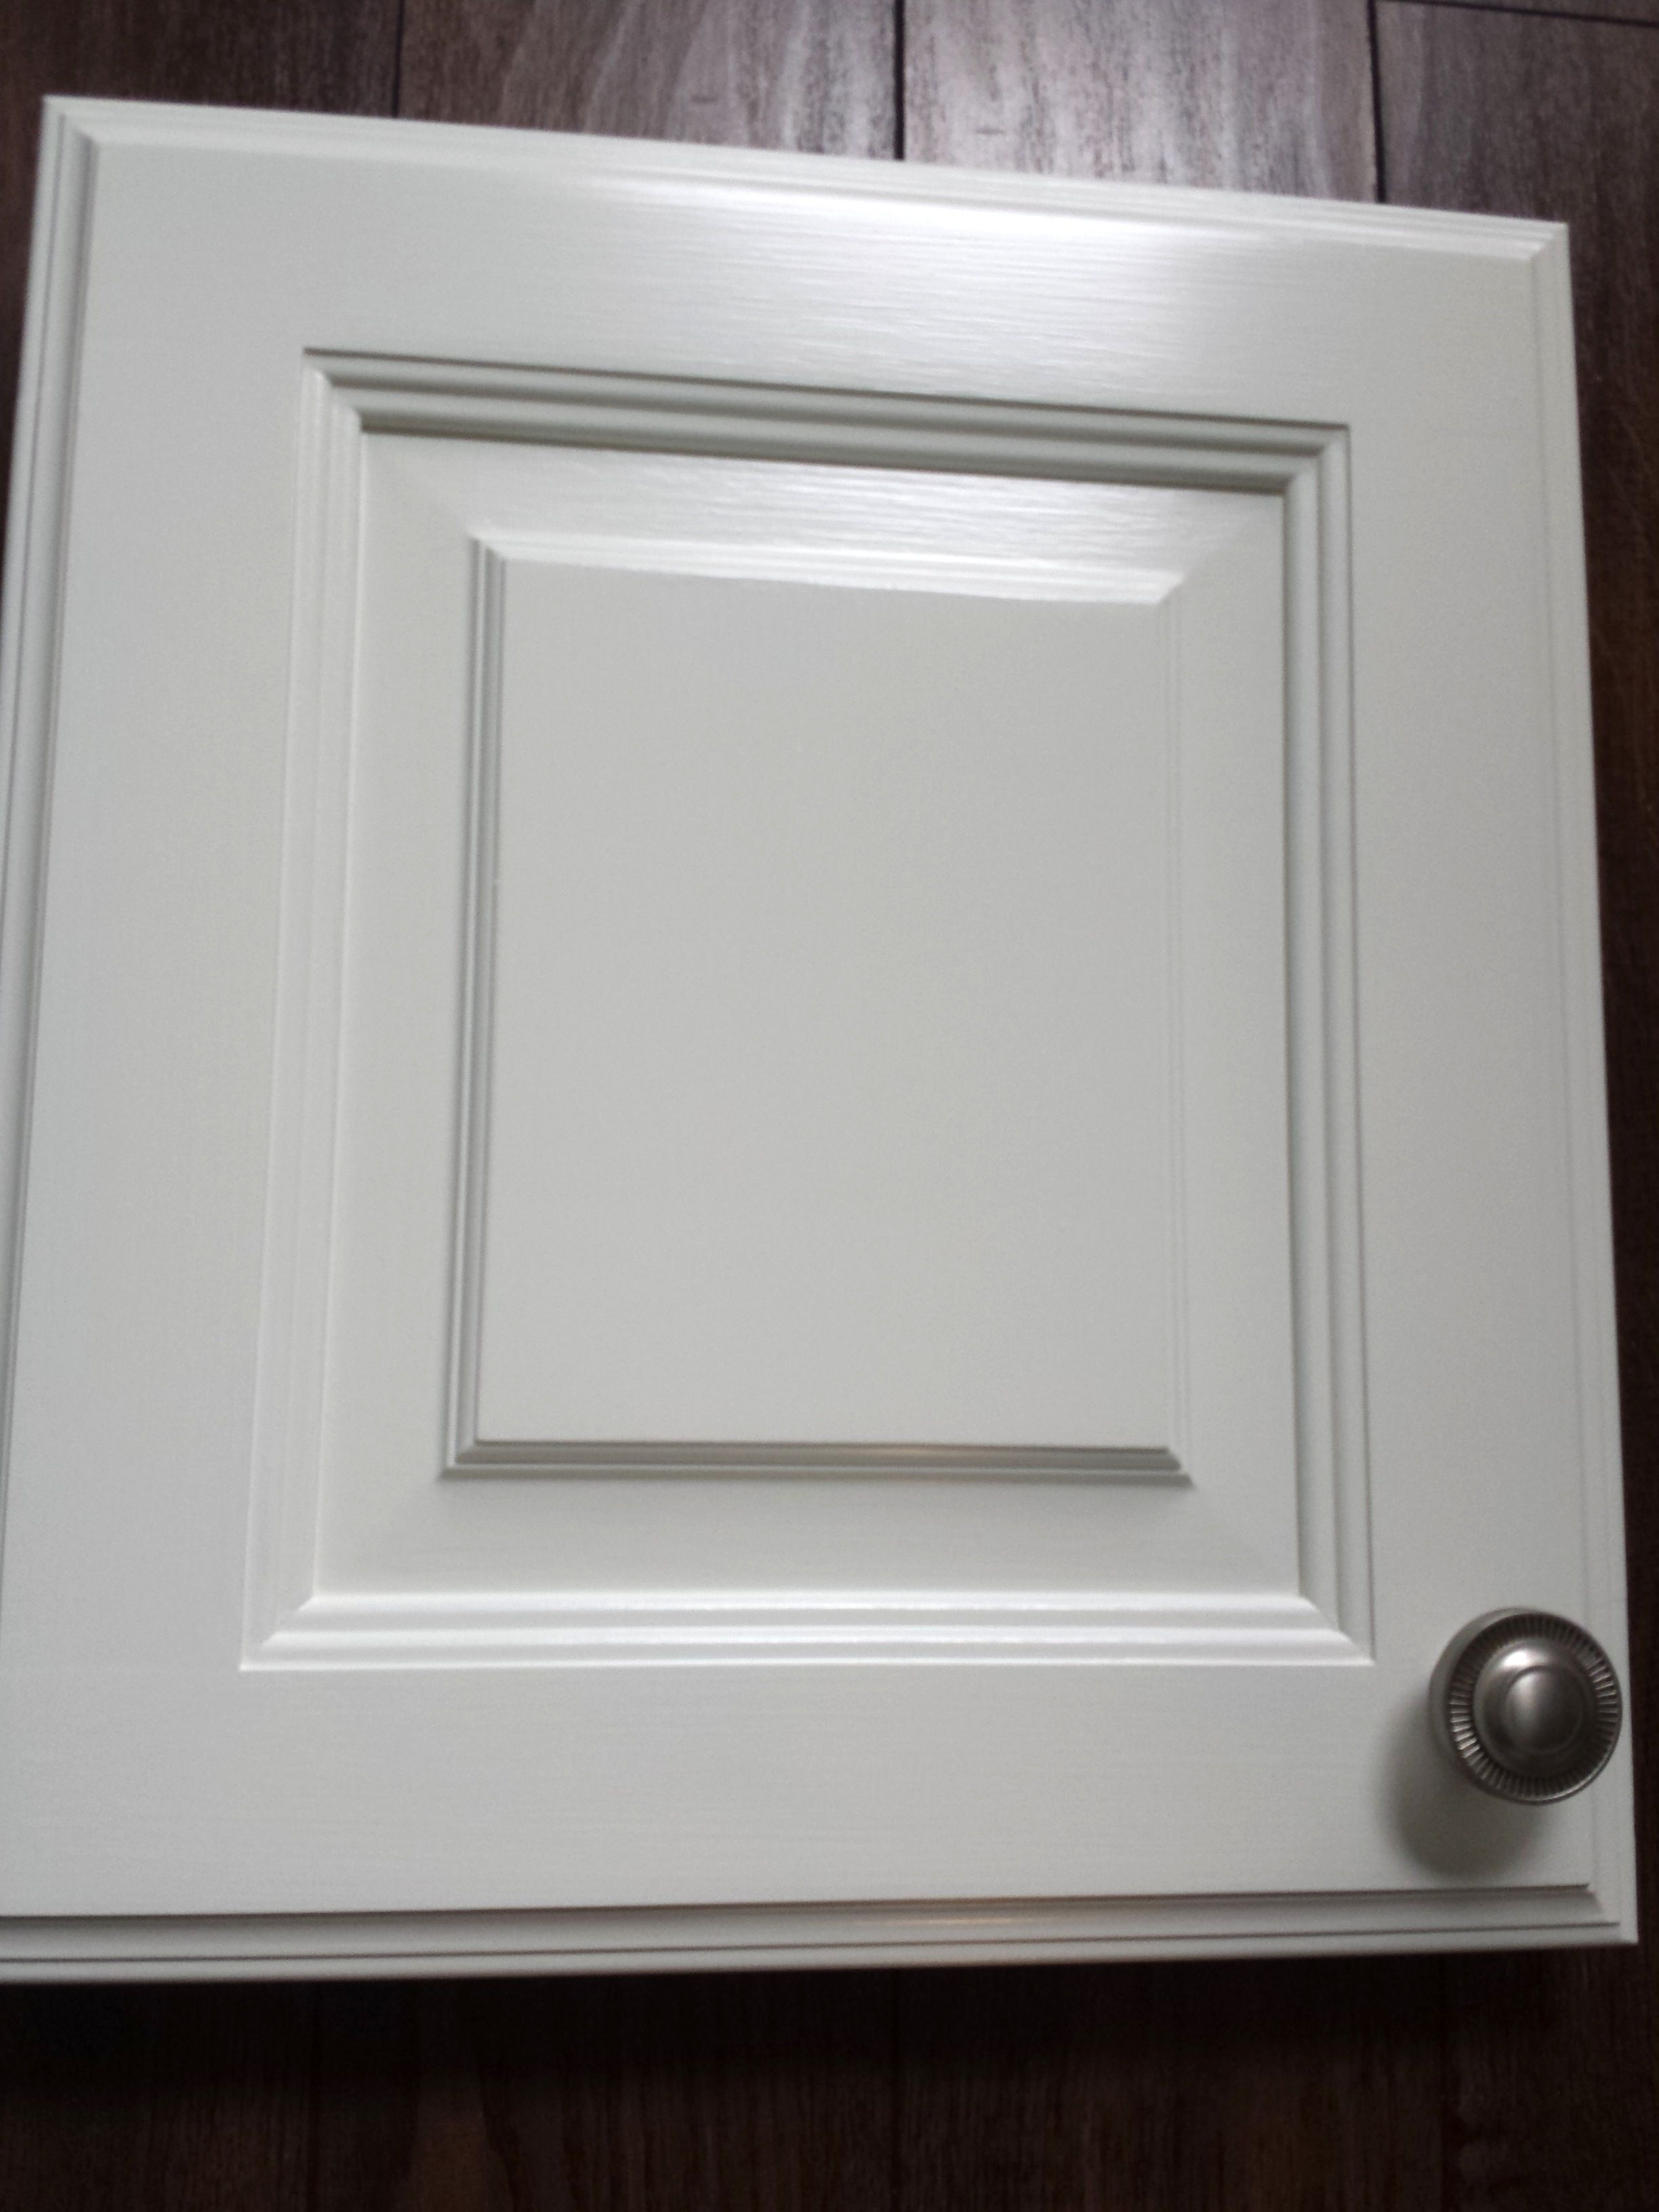 Kitchen Cabinet Painting Ideas Colors Benjamin Moore White Dove In Advance Paint. Hardware From